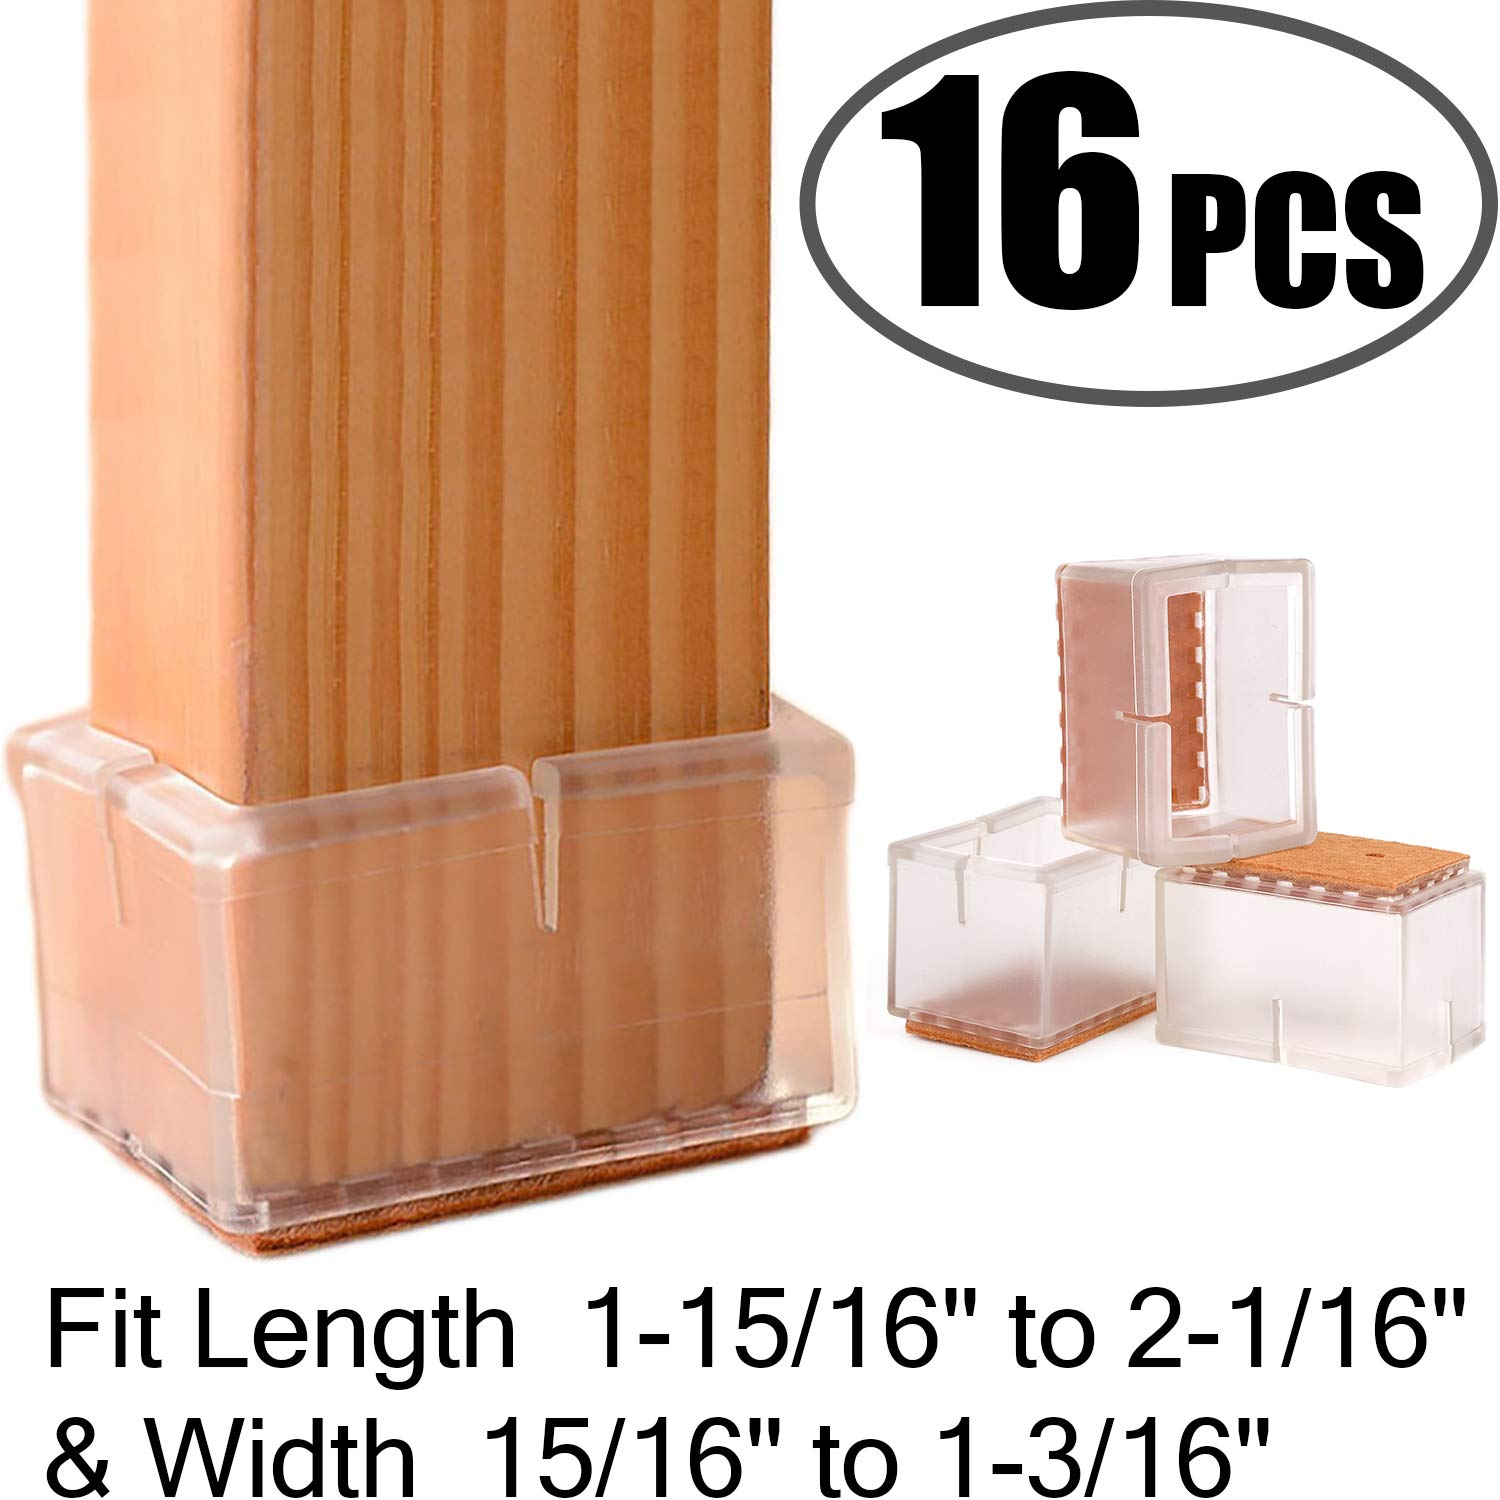 "Chair Leg Floor Protectors Rectangular Fit Length 1-15/16"" to 2-1/16"" & Width 15/16"" to 1-3/16"" Large Chair Leg Caps Silicone Table Chair Feet Protectors with Felt Pads (16Pack)"